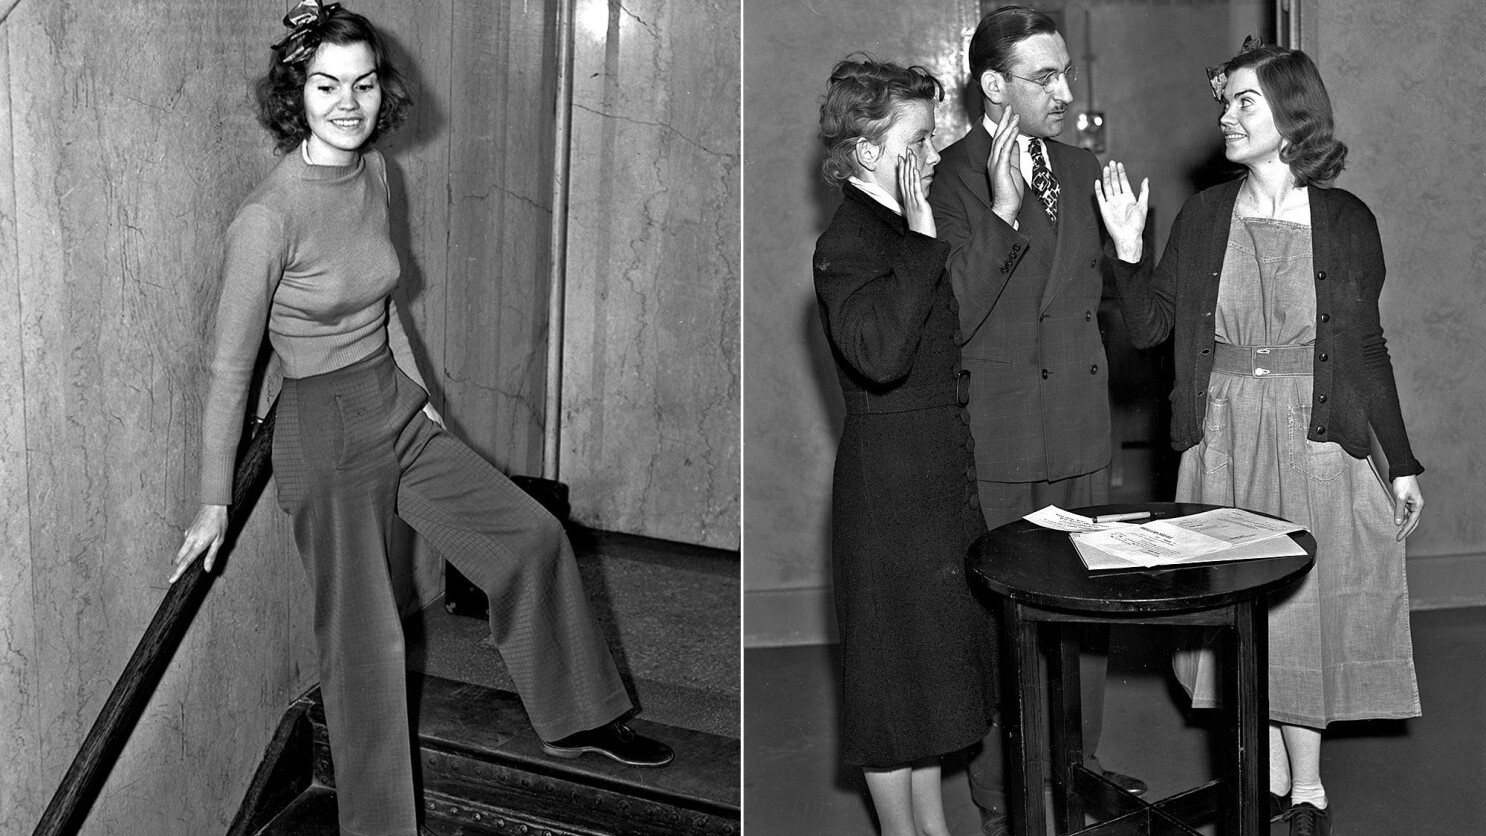 California Retrospective: In 1938, L.A. woman went to jail for ...